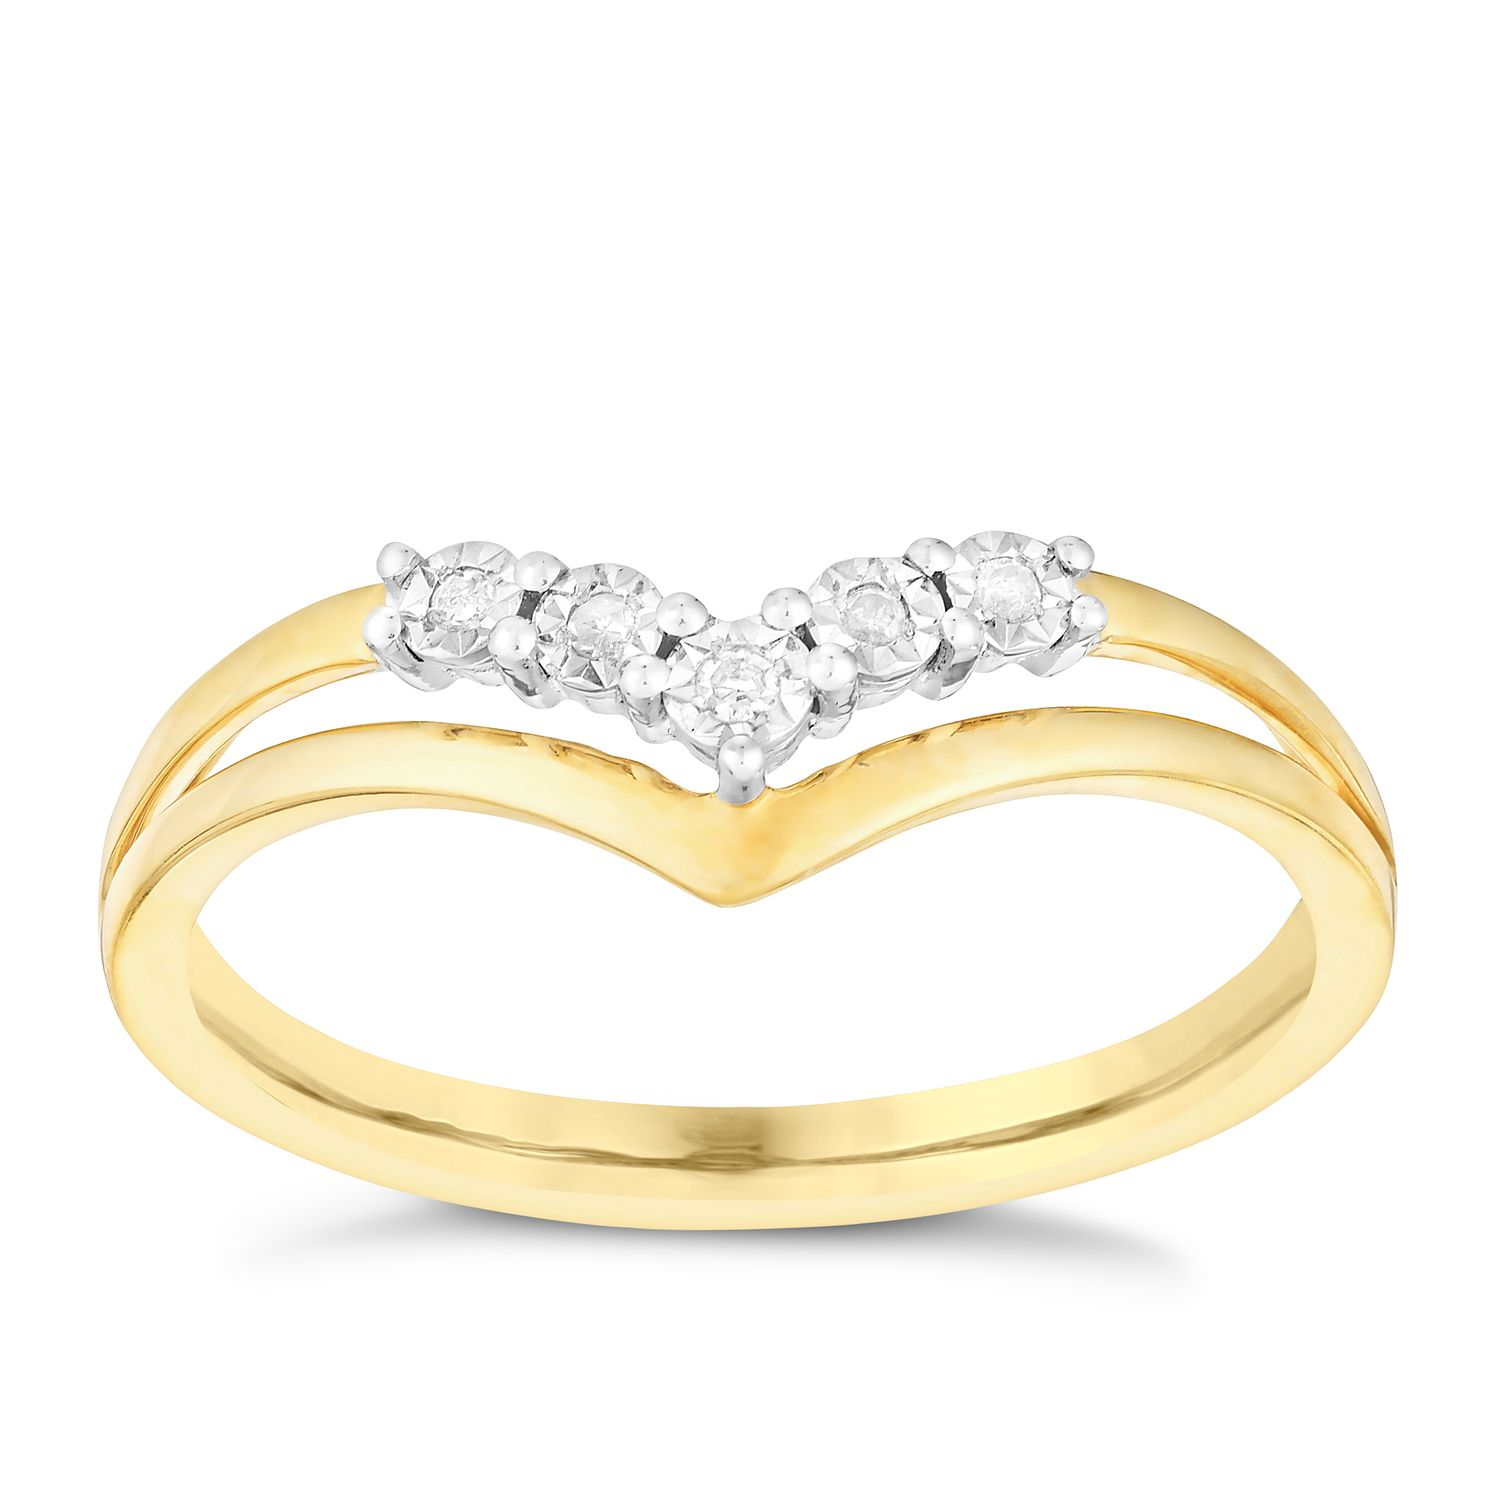 moments gold jewellery beautiful diamond ring half special glamorous for the eternity rings your